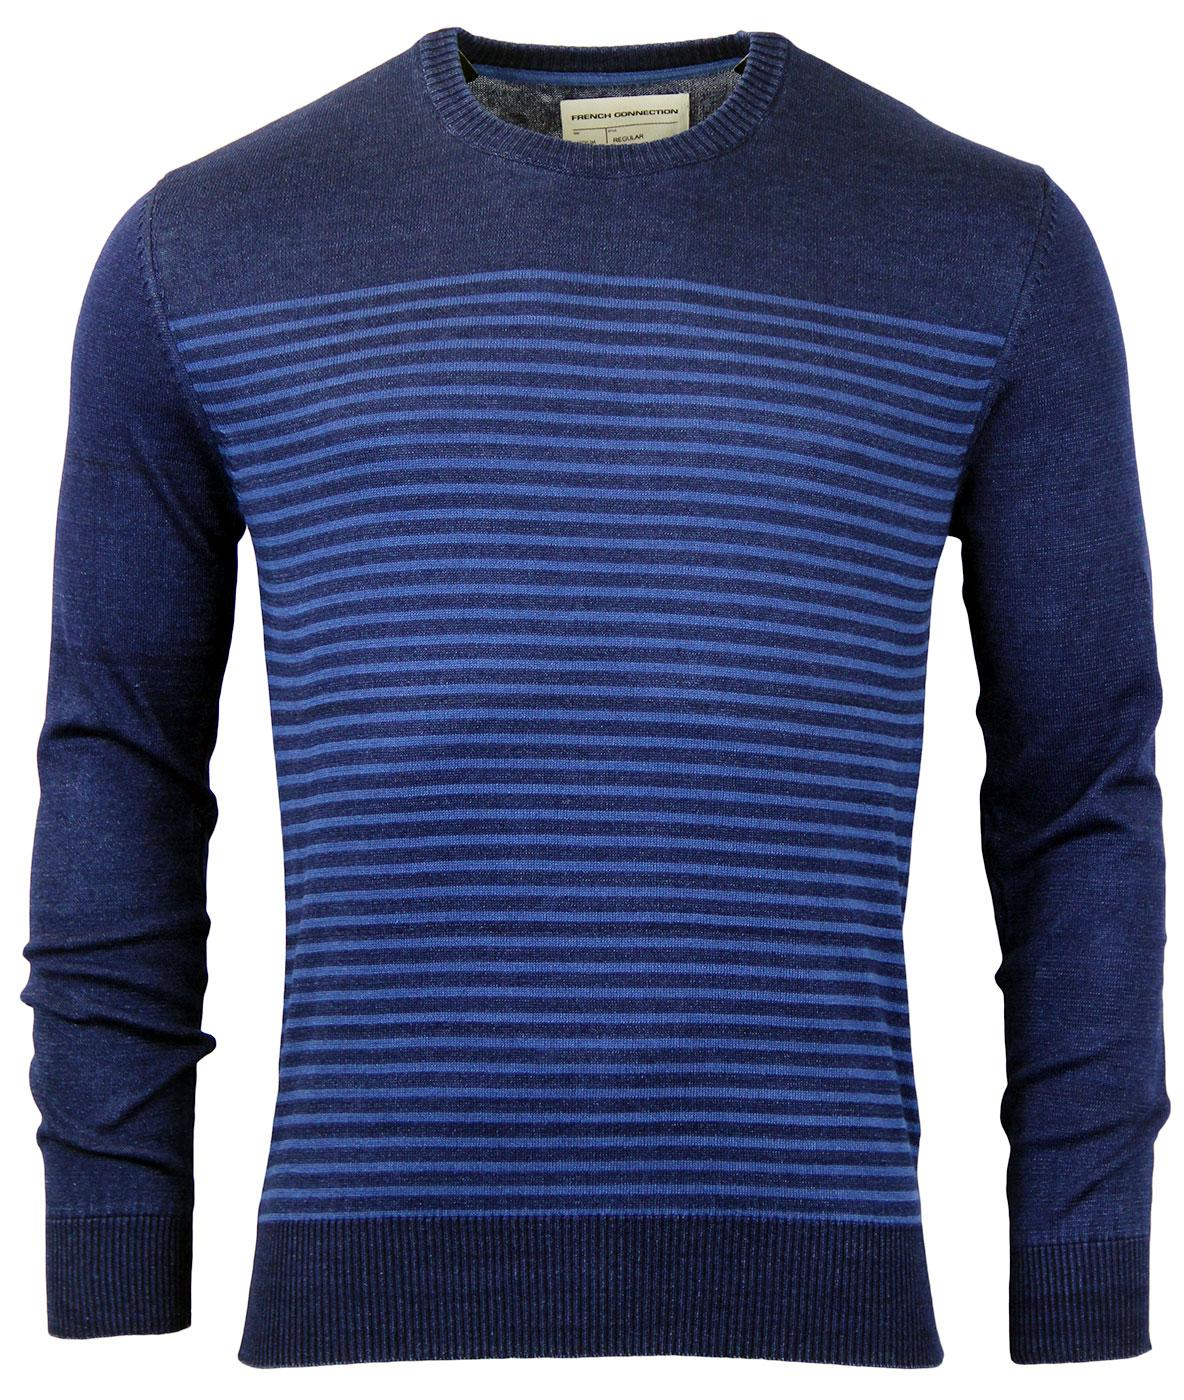 FRENCH CONNECTION Indigo Stripe Knit Mod Jumper